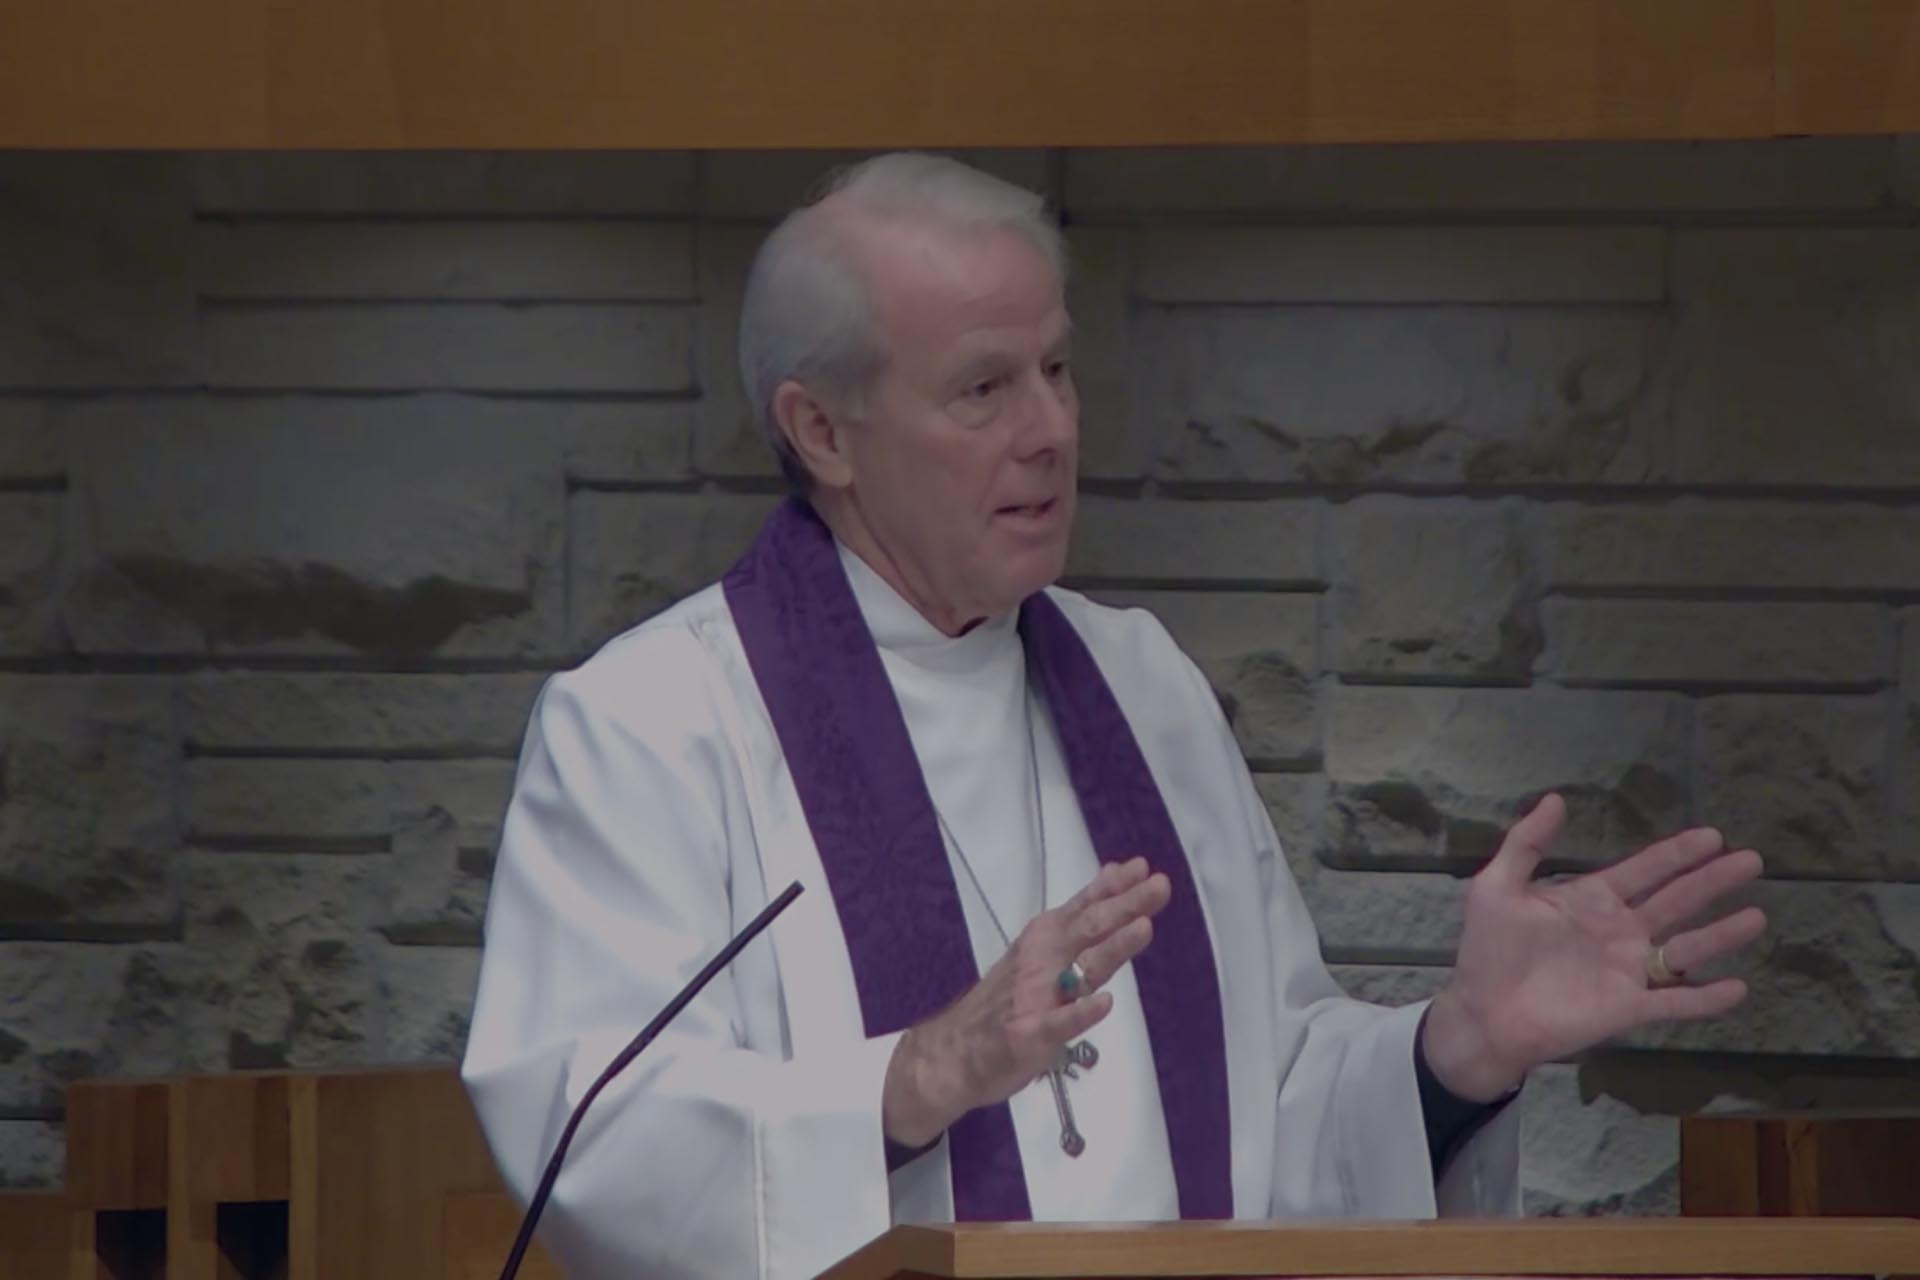 People, Purpose & Power - Sermon by the Rev. Dr. Doug Richnow